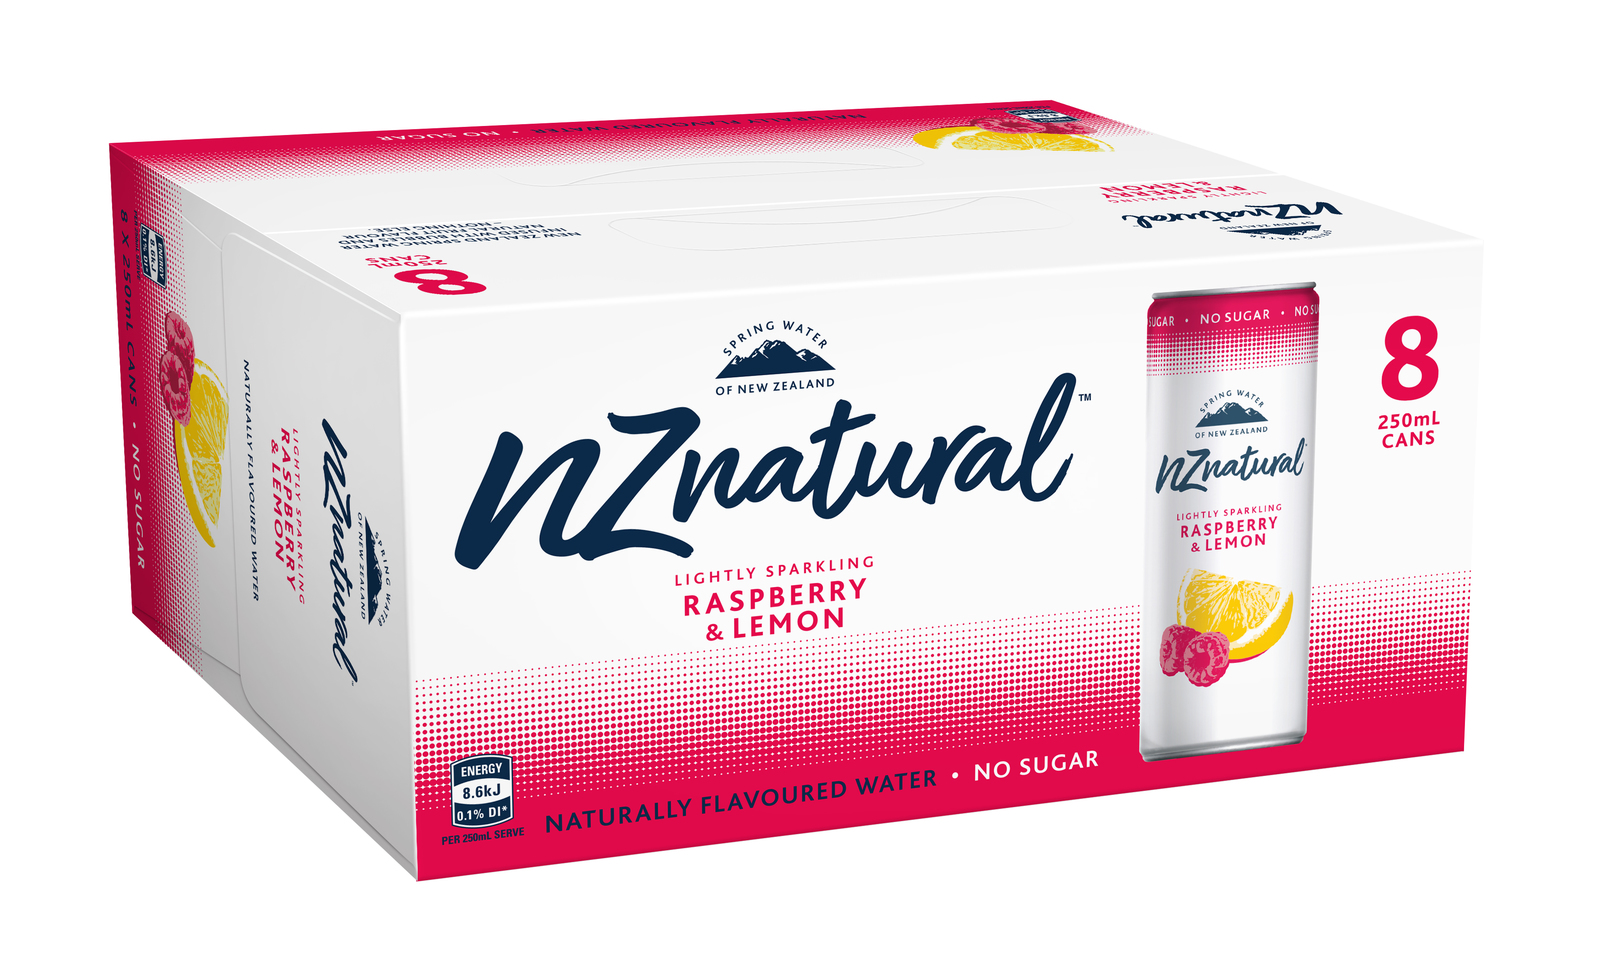 NZ Natural Raspberry & Lemon Sparkling Water 250ml (8 Pack) image